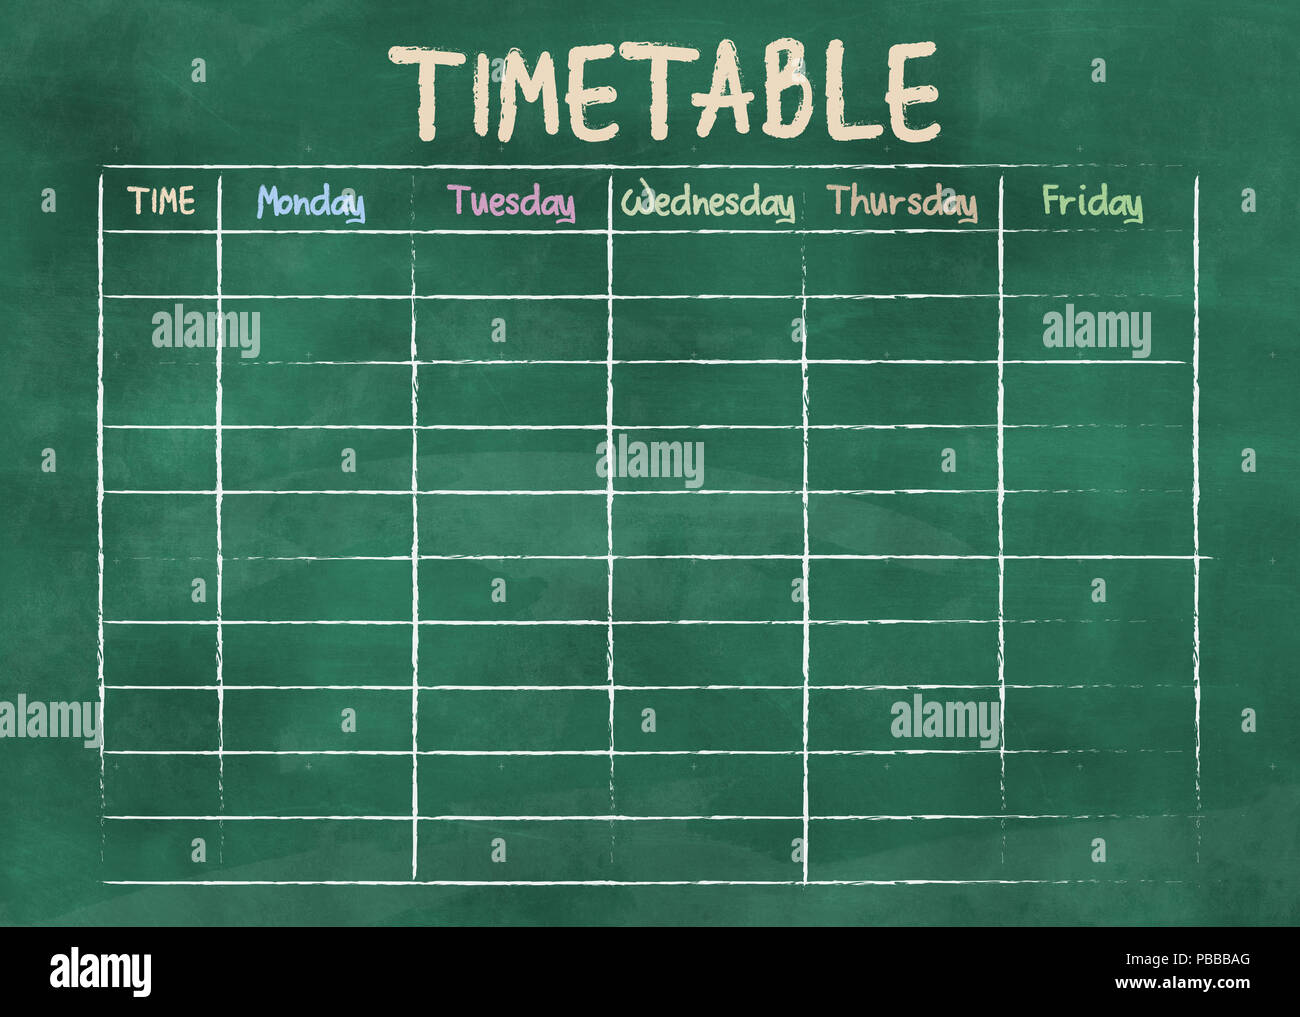 school timetable or class schedule on green chalkboard - Stock Image